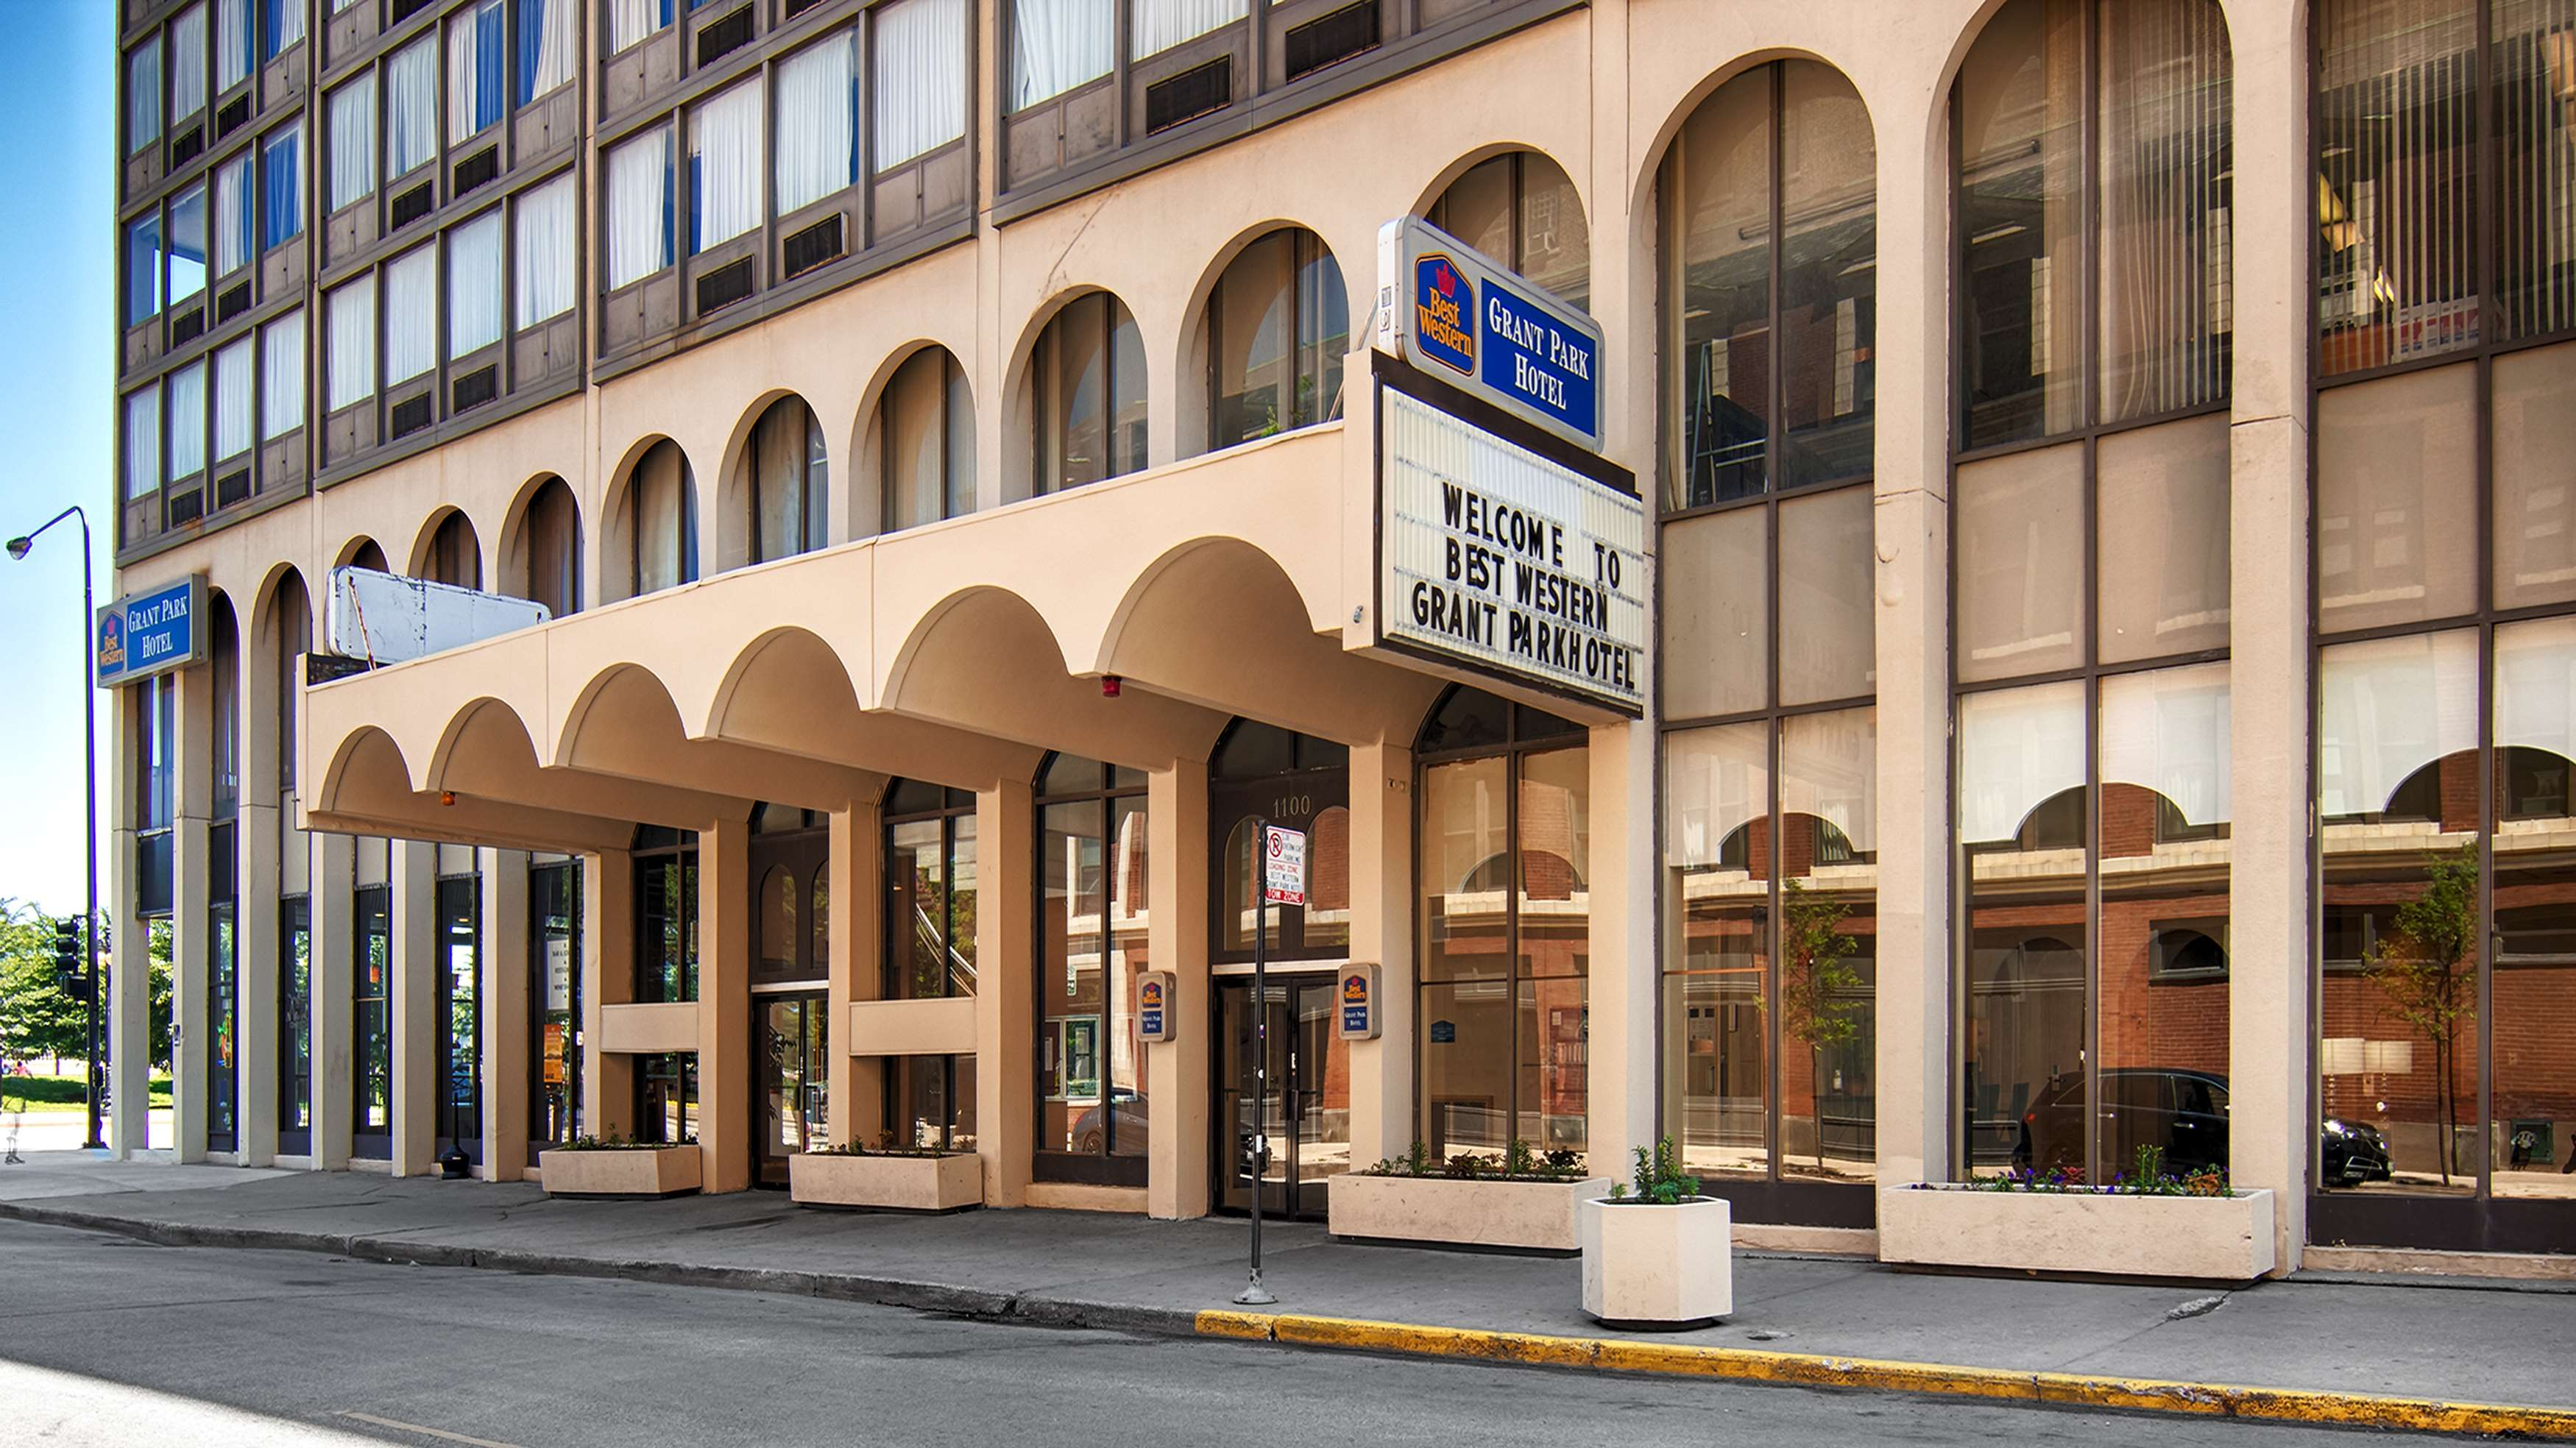 Best western grant park hotel chicago il company for Hotels 60657